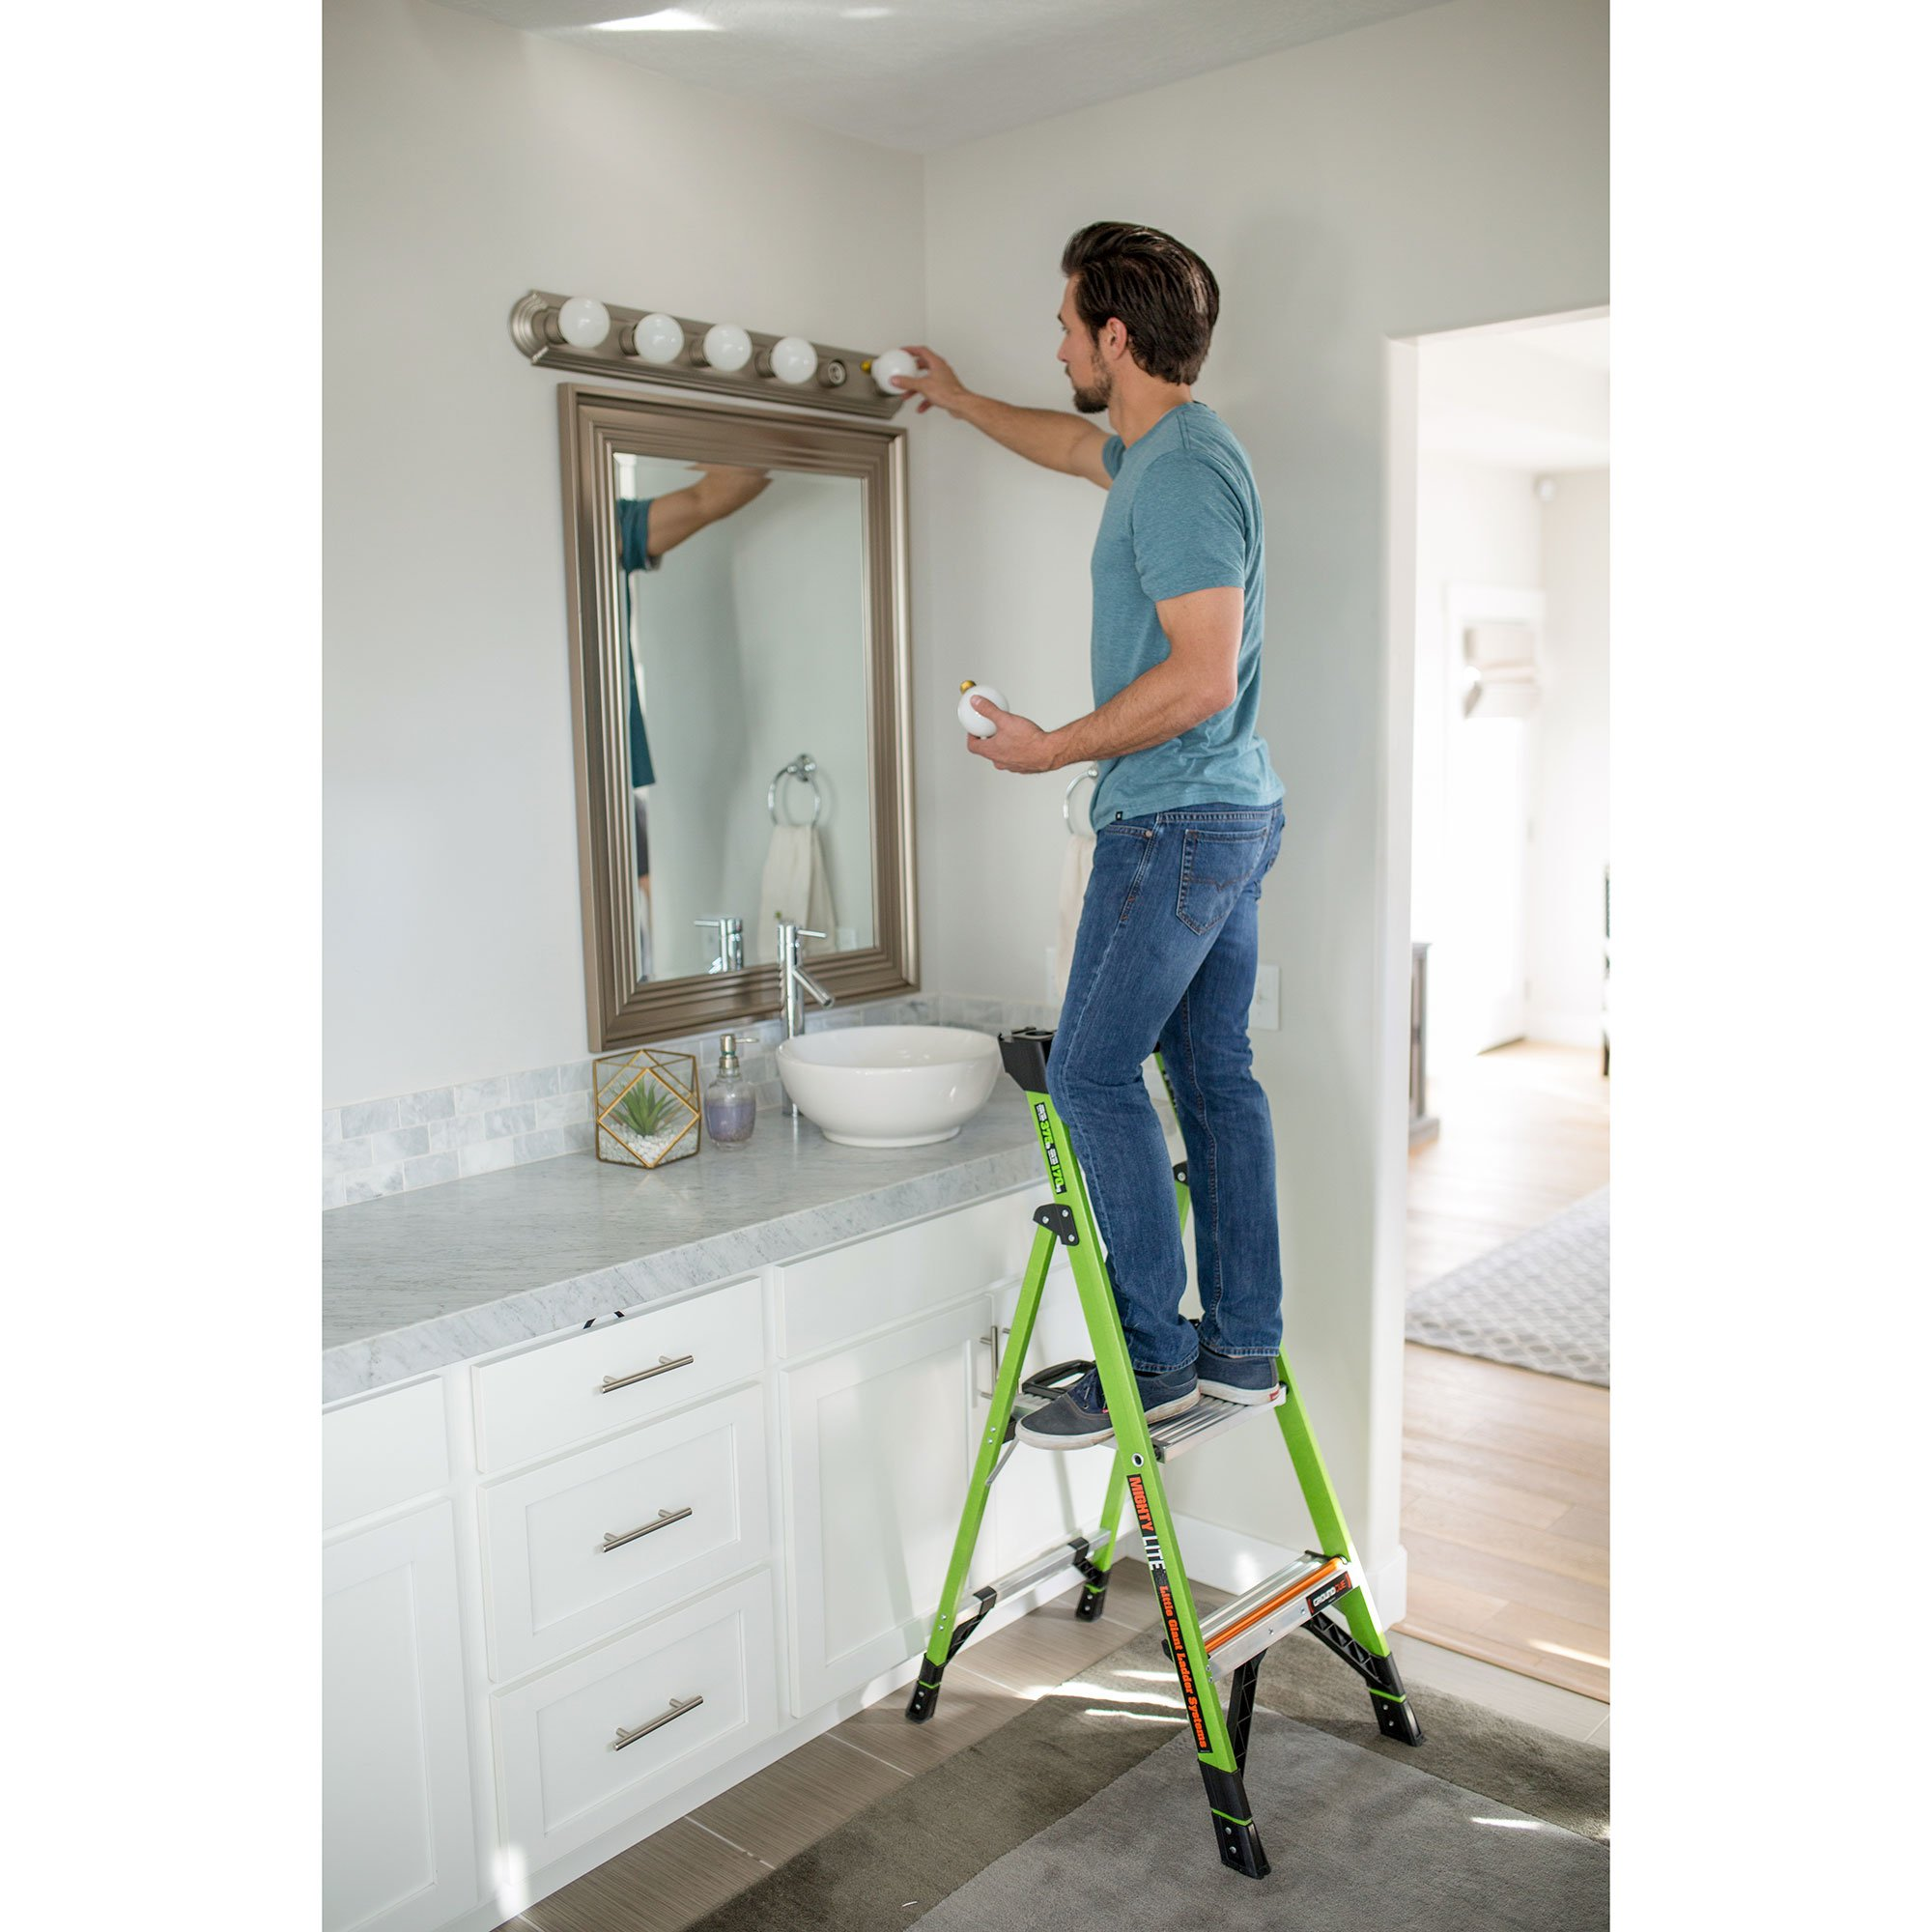 Little Giant Ladder Systems 15364-001 Mightylite 4 4, 4' IA 4 Step Ladder by Little Giant Ladder Systems (Image #2)